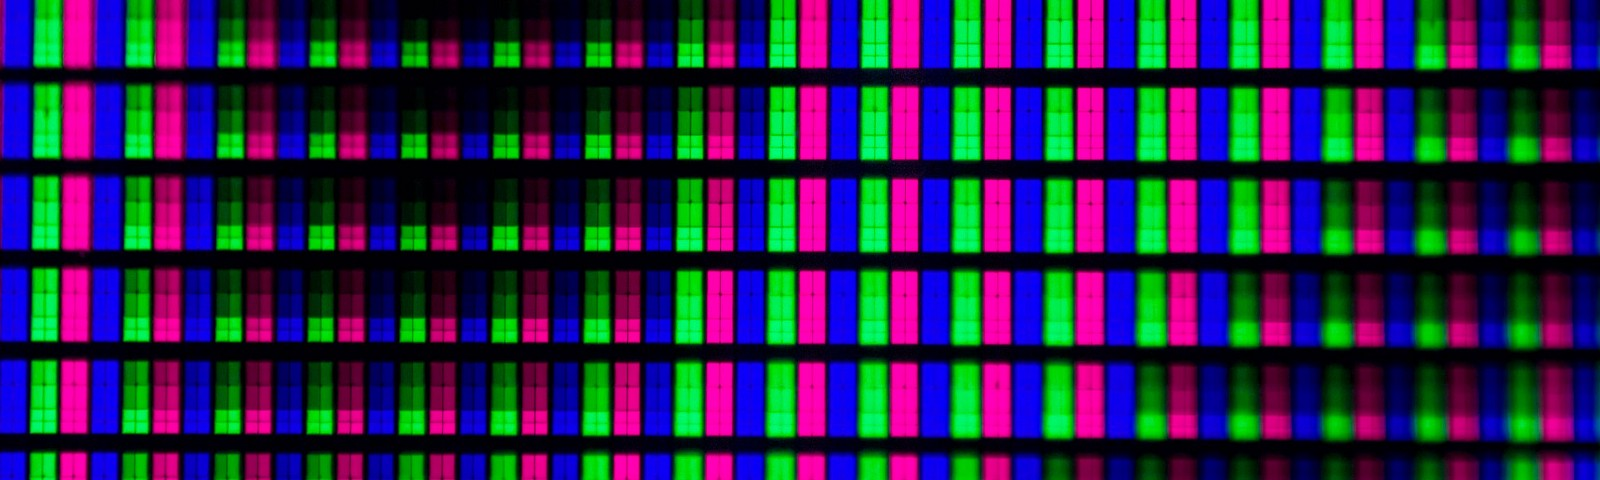 Pink, green, and blue rectangles repeating in rows